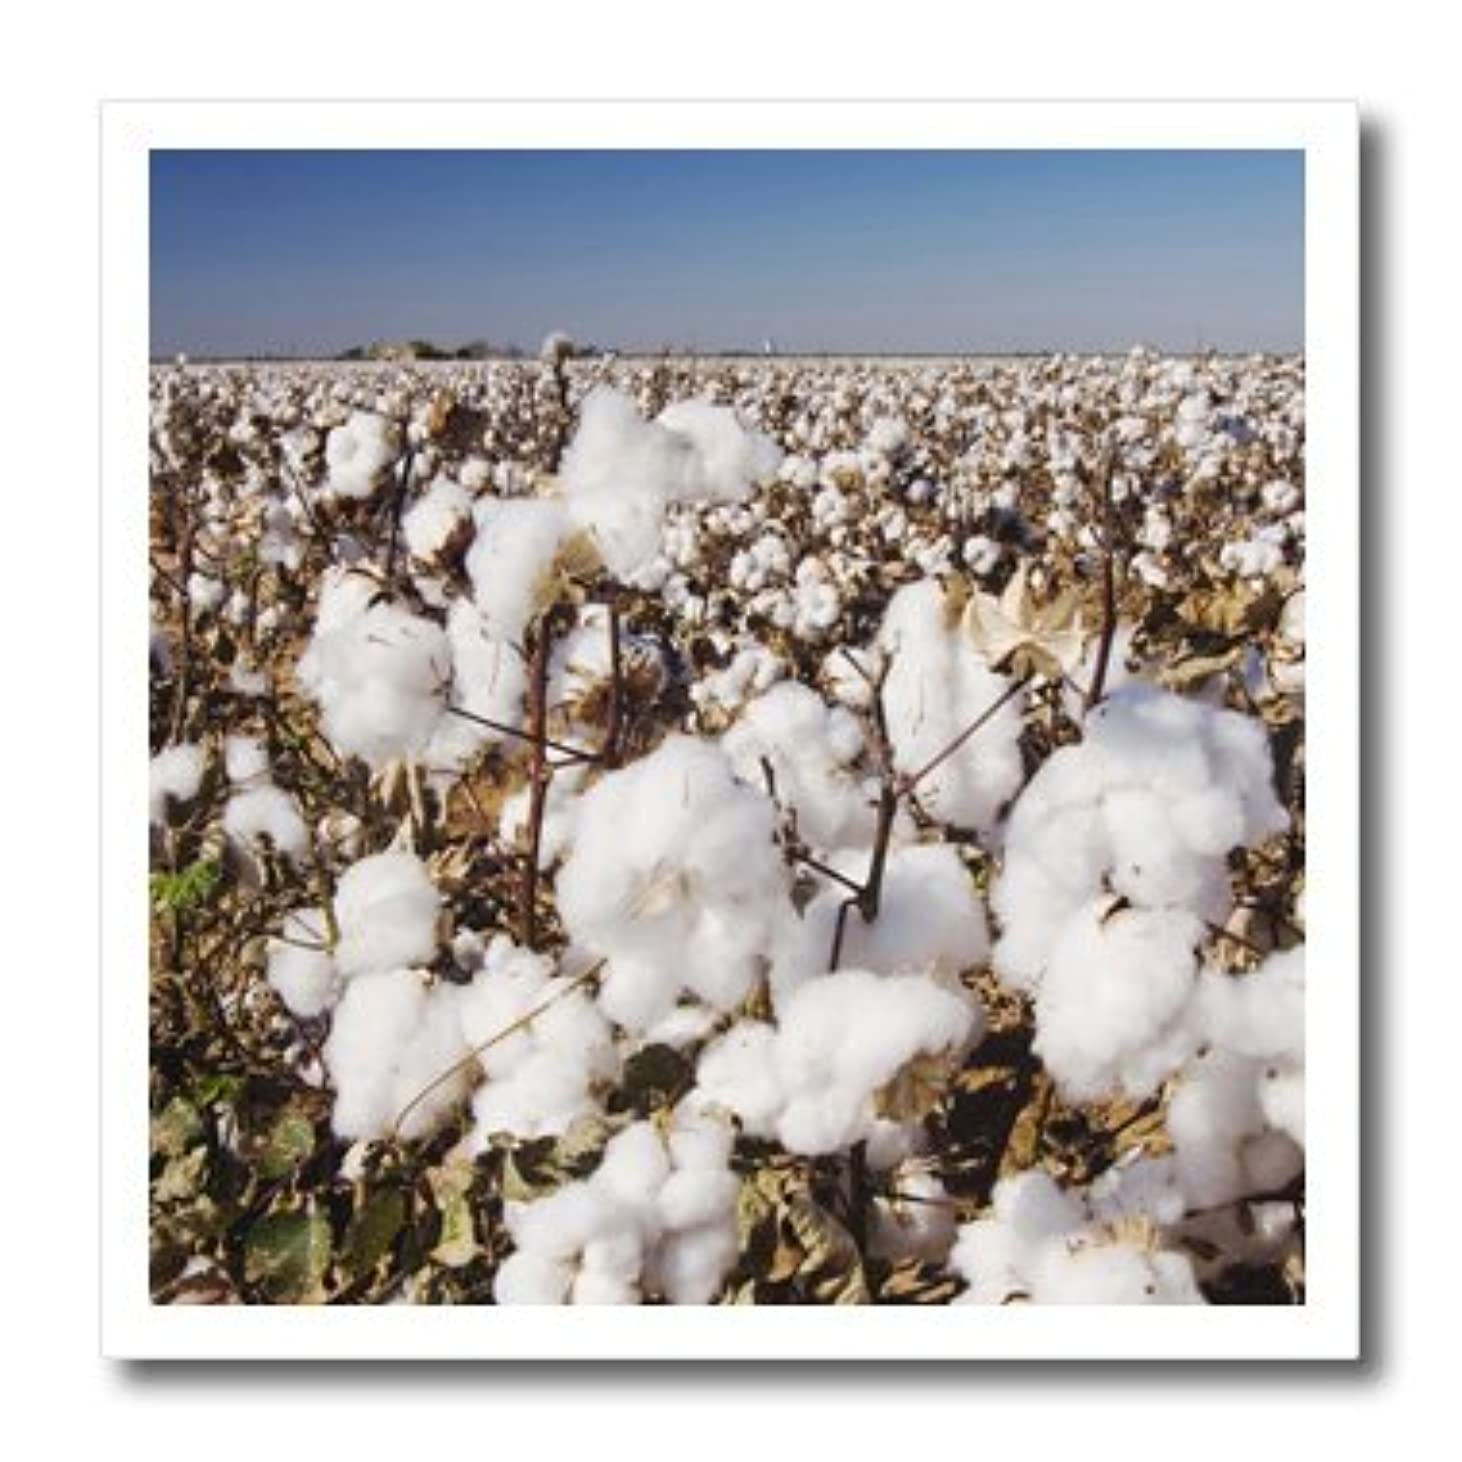 3dRose ht_84481_1 Cotton Plant, Agriculture, Lubbock, Texas-Rolf Nussbaumer-Iron on Heat Transfer for Material, 8 by 8-Inch, White irjmc988335